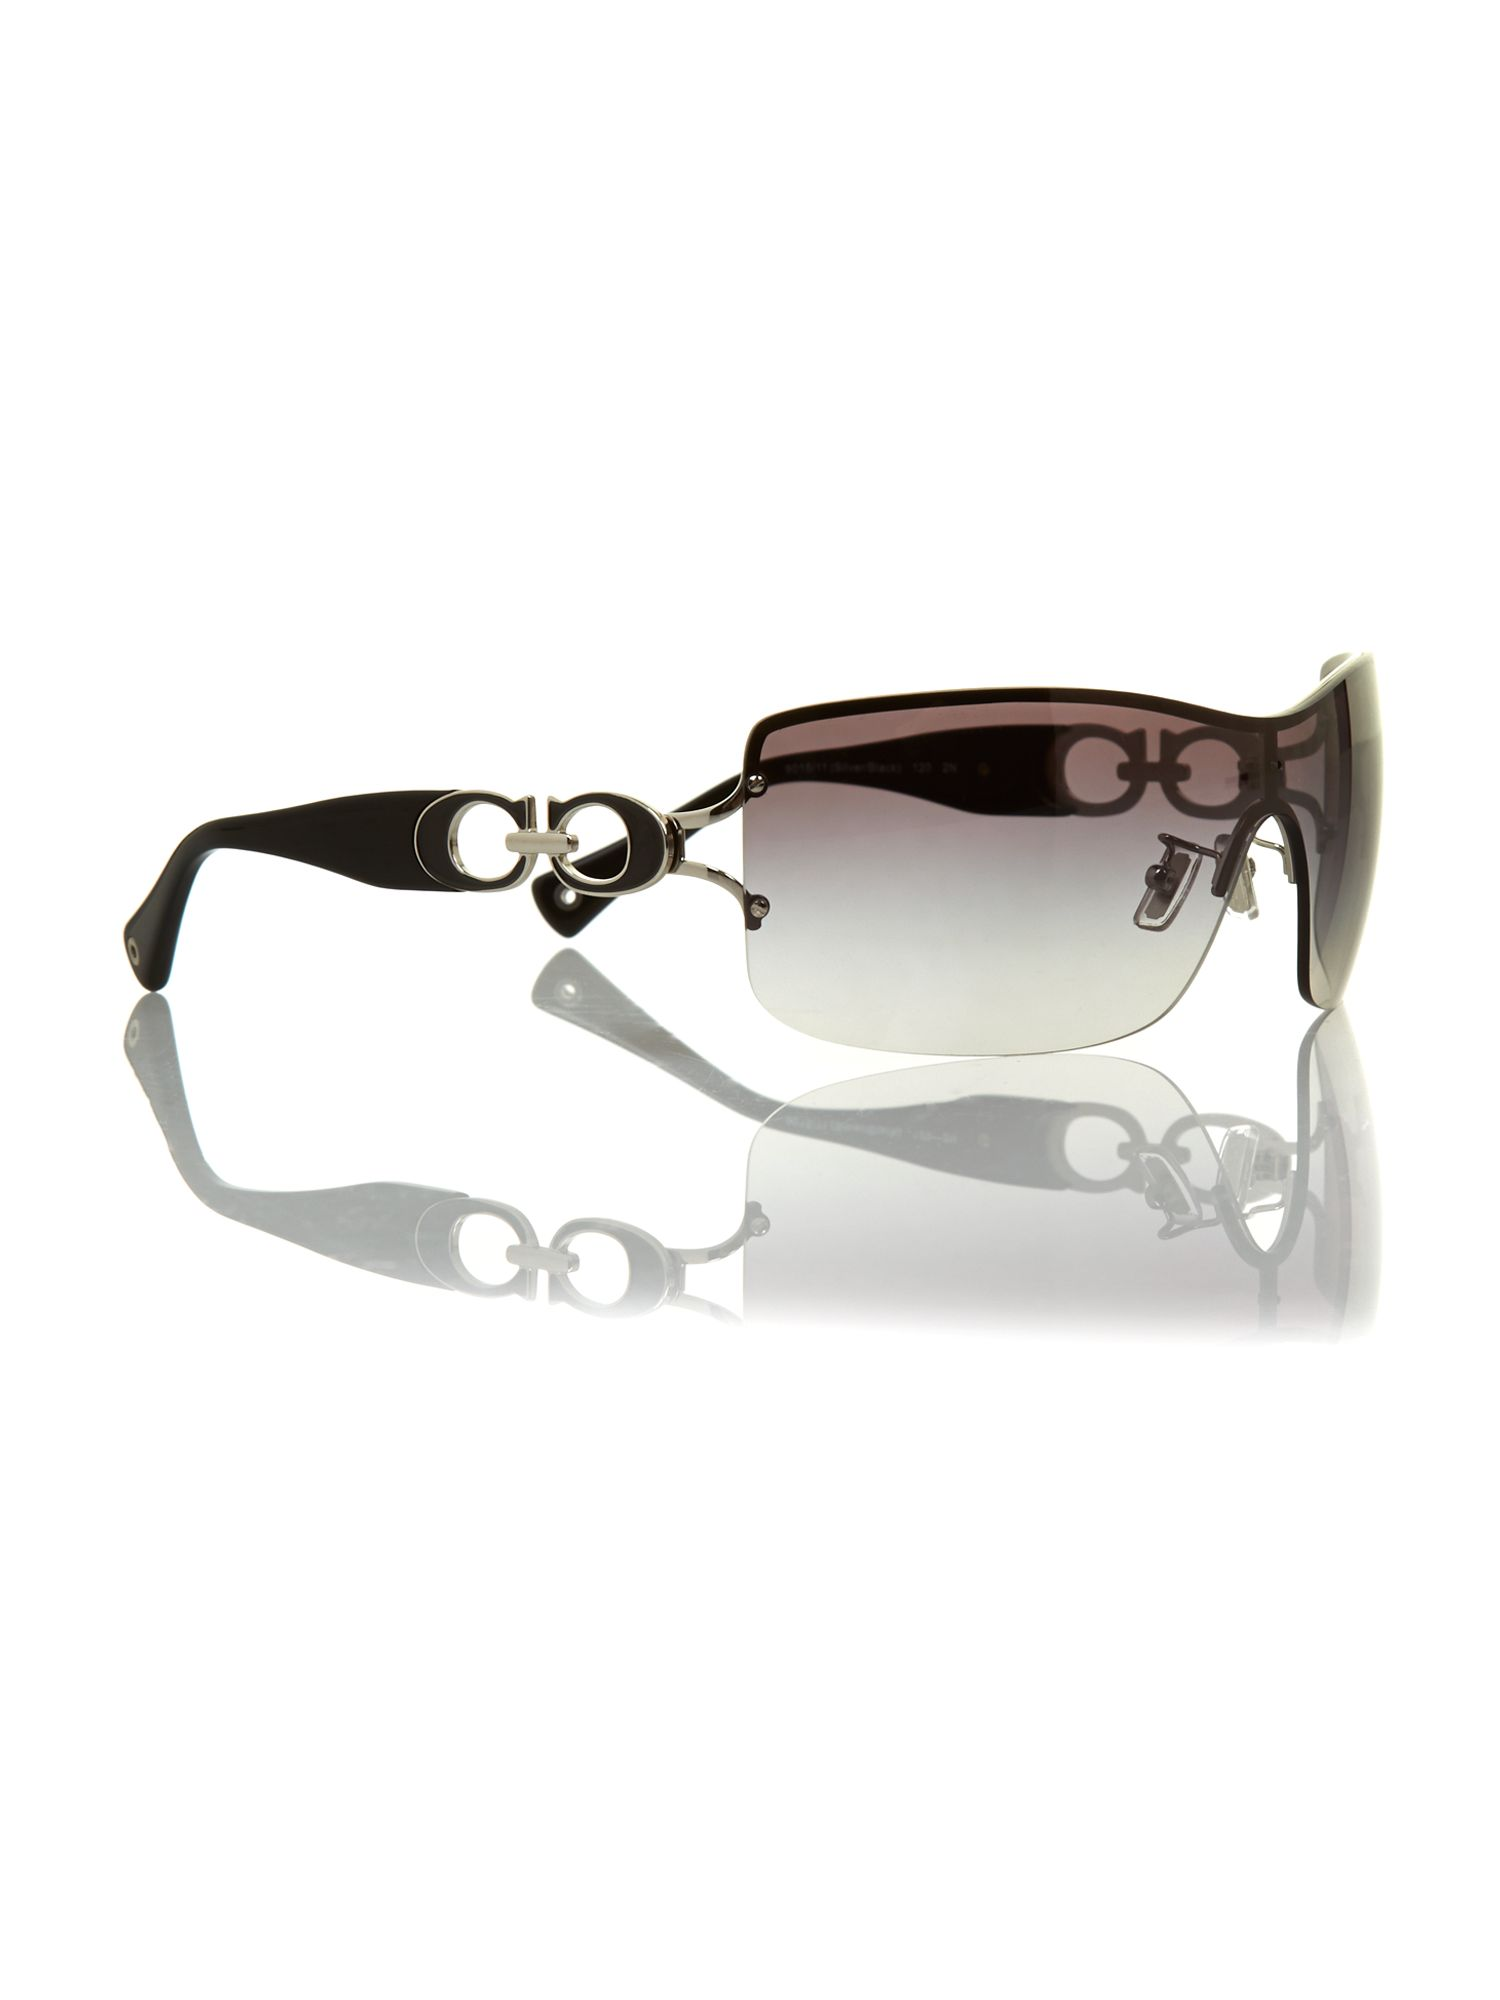 Ladies noelle silver/black sunglasses